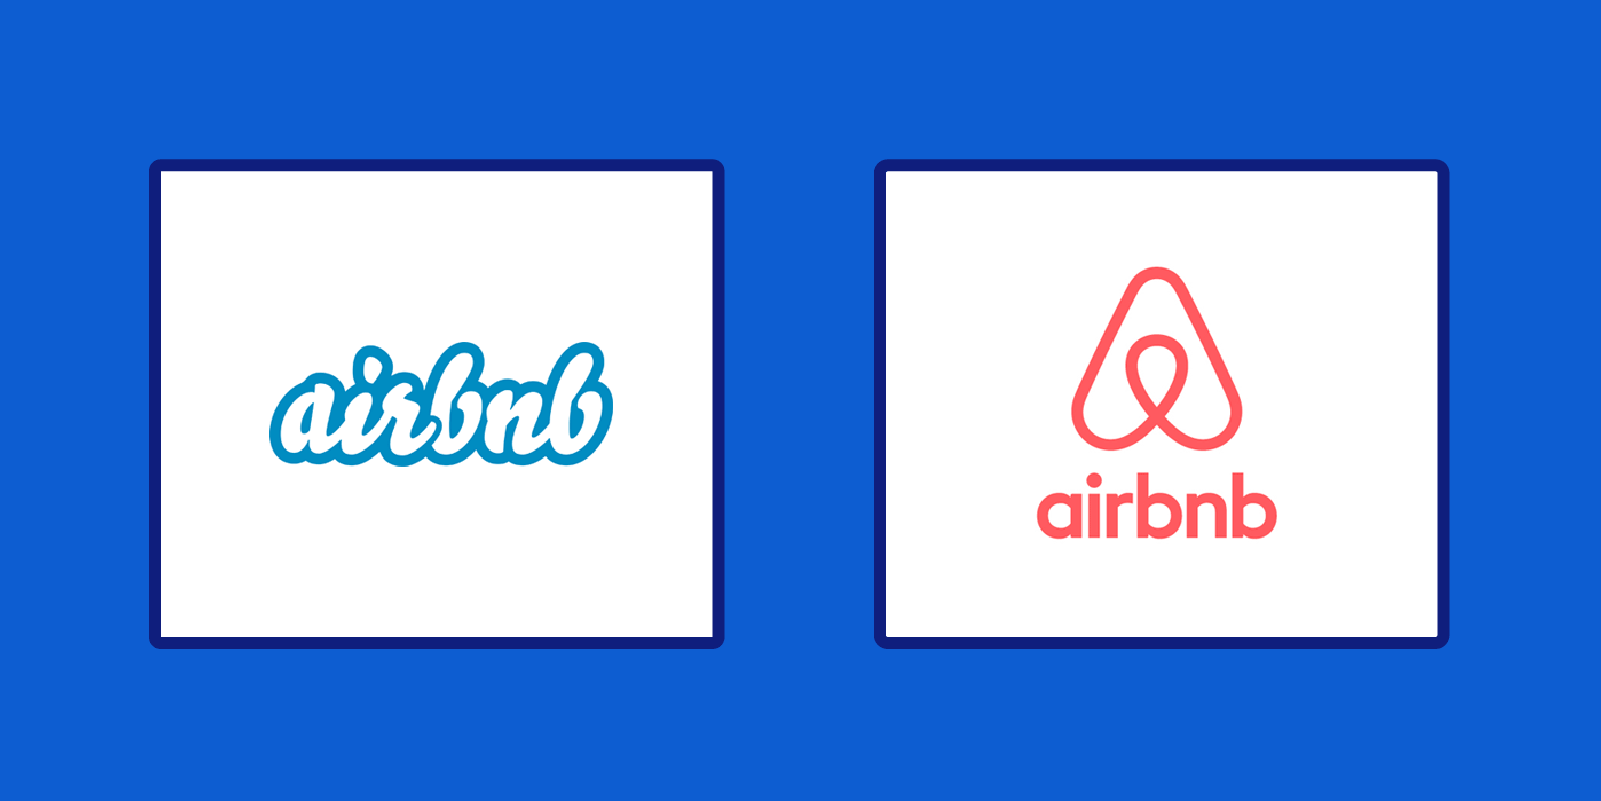 Brand Identity - the evolution of the Airbnb logo